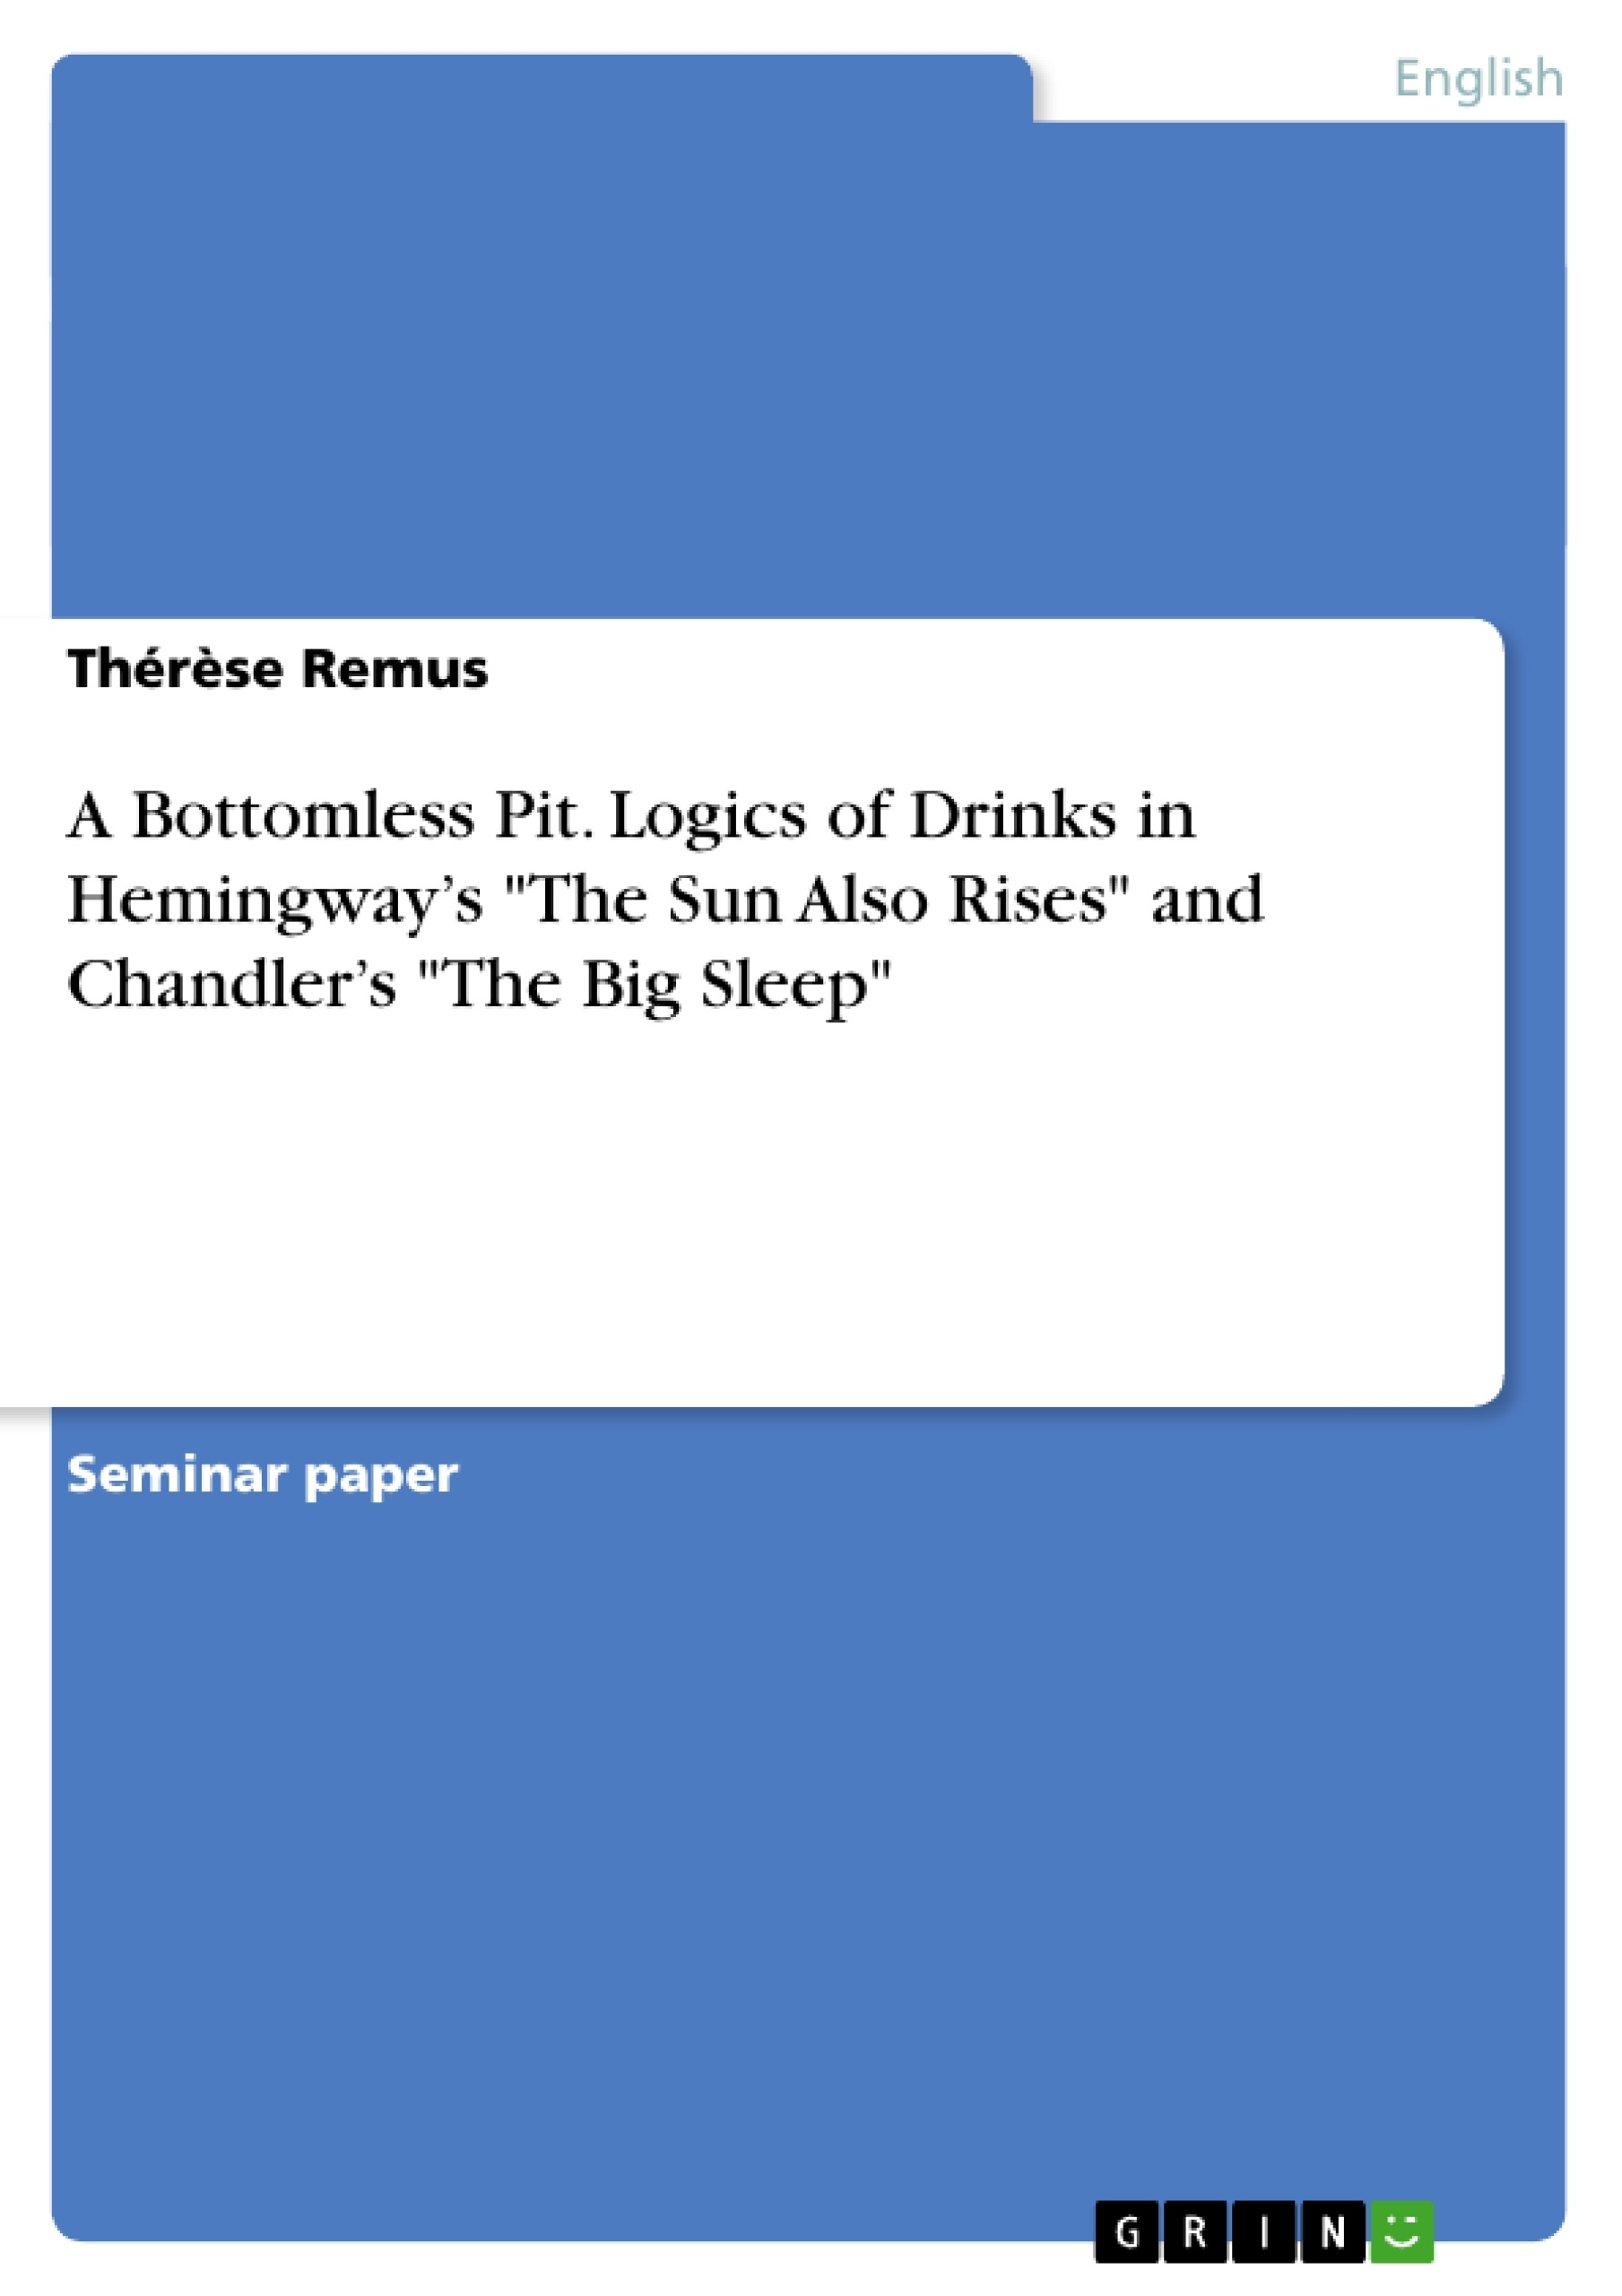 the sun also rises essays a bottomless pit logics of drinks in  a bottomless pit logics of drinks in hemingway s the sun also a bottomless pit logics